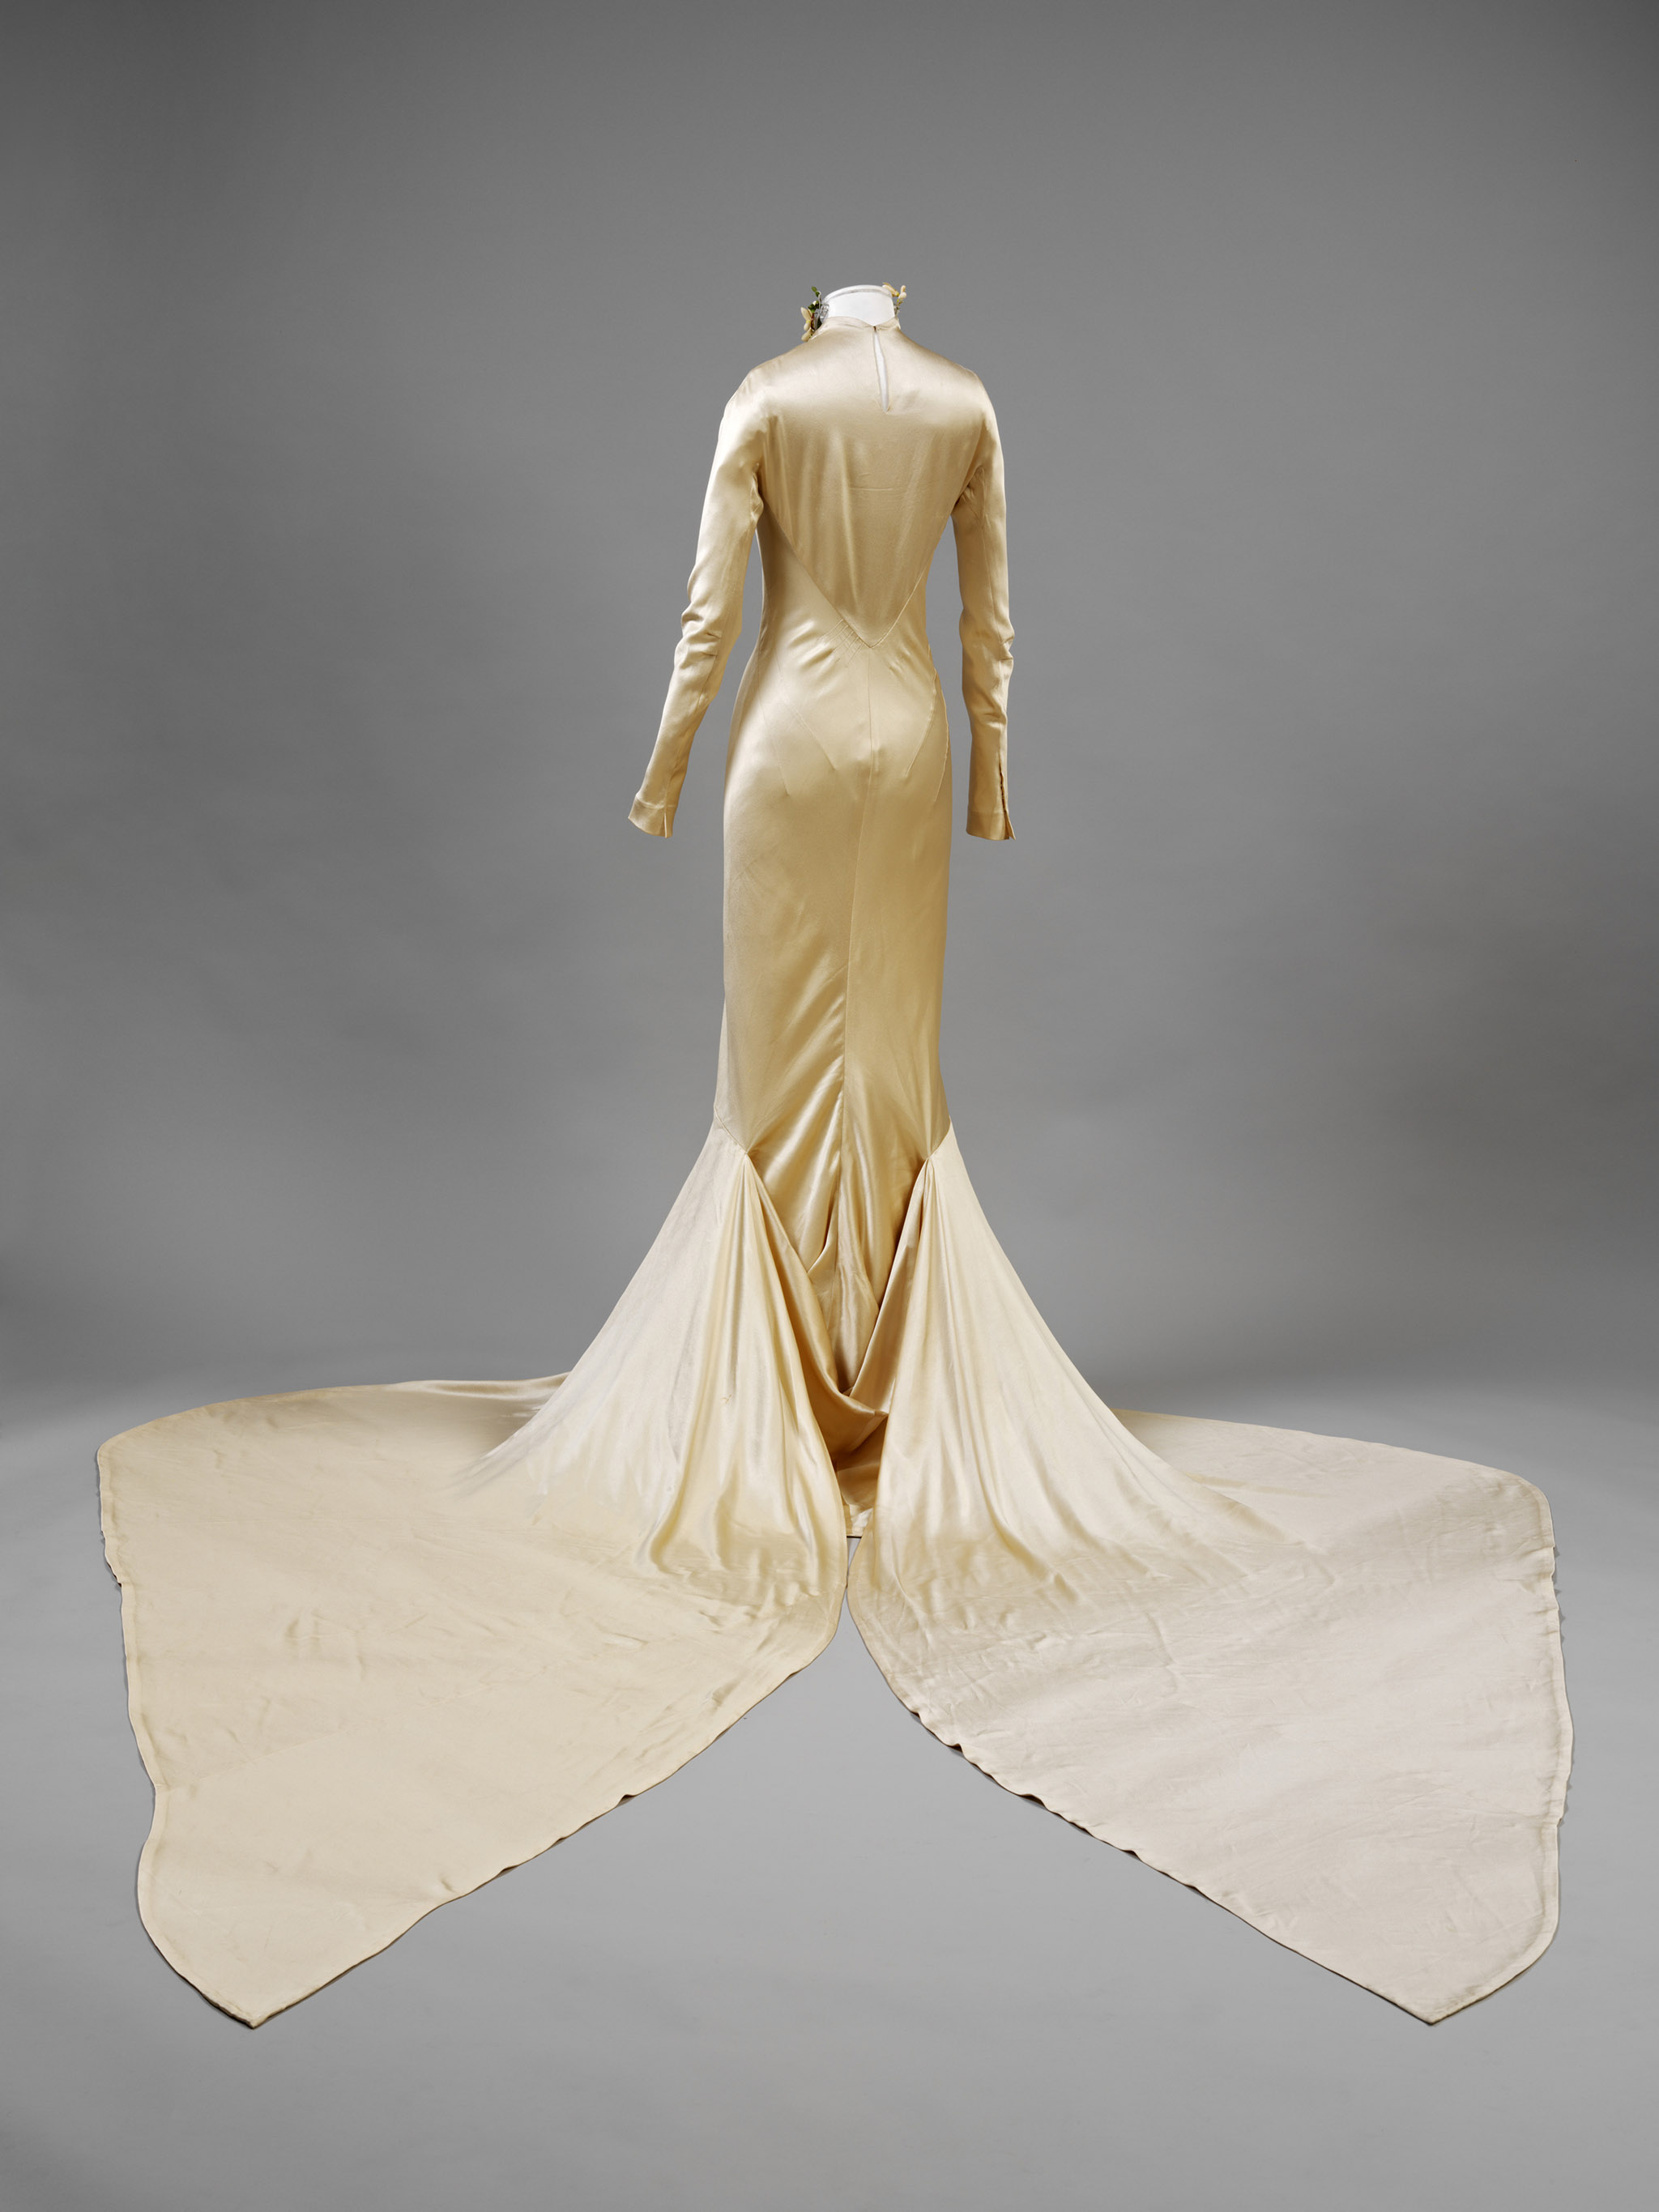 Silk_satin_wedding_dress_designed_by_Charles_James_London_1934._Worn_by_Barbara_Baba_Beaton._Given_by_Mrs_Alec_Hambro_c_Victoria_and_Albert_Museum_London_reverse